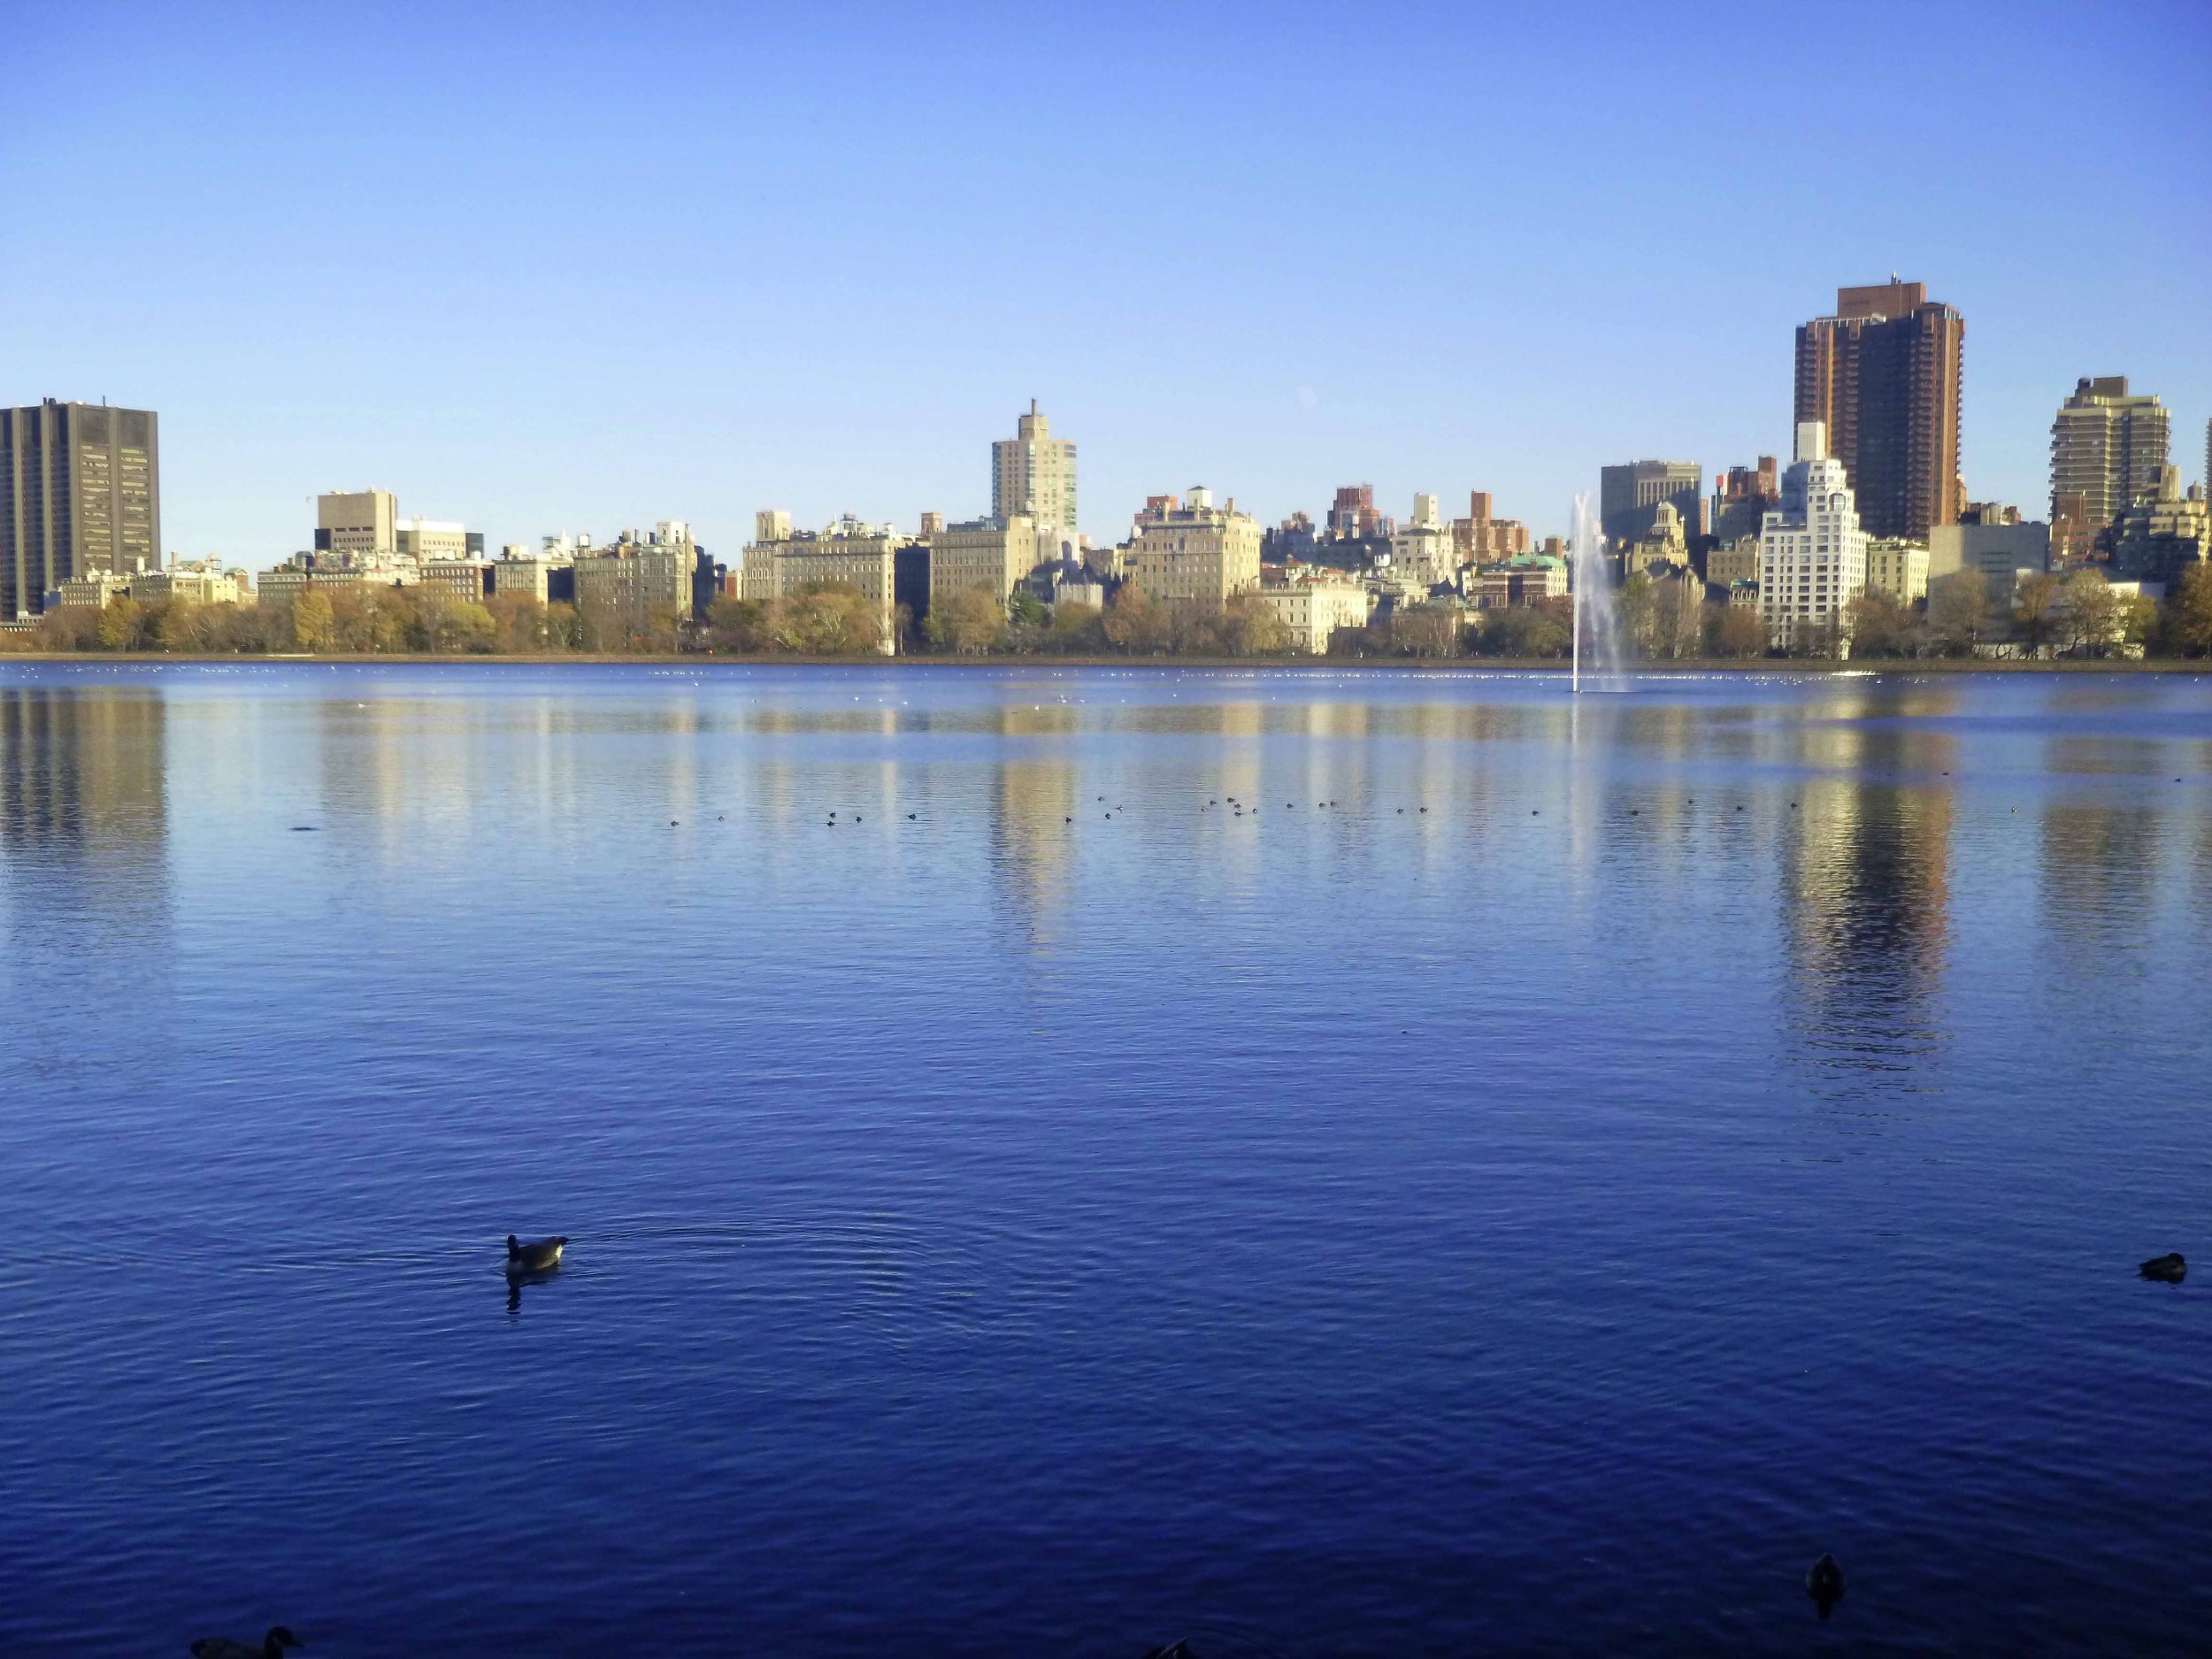 Jacqueline Kennedy Onassis Reservoir in Central Park.